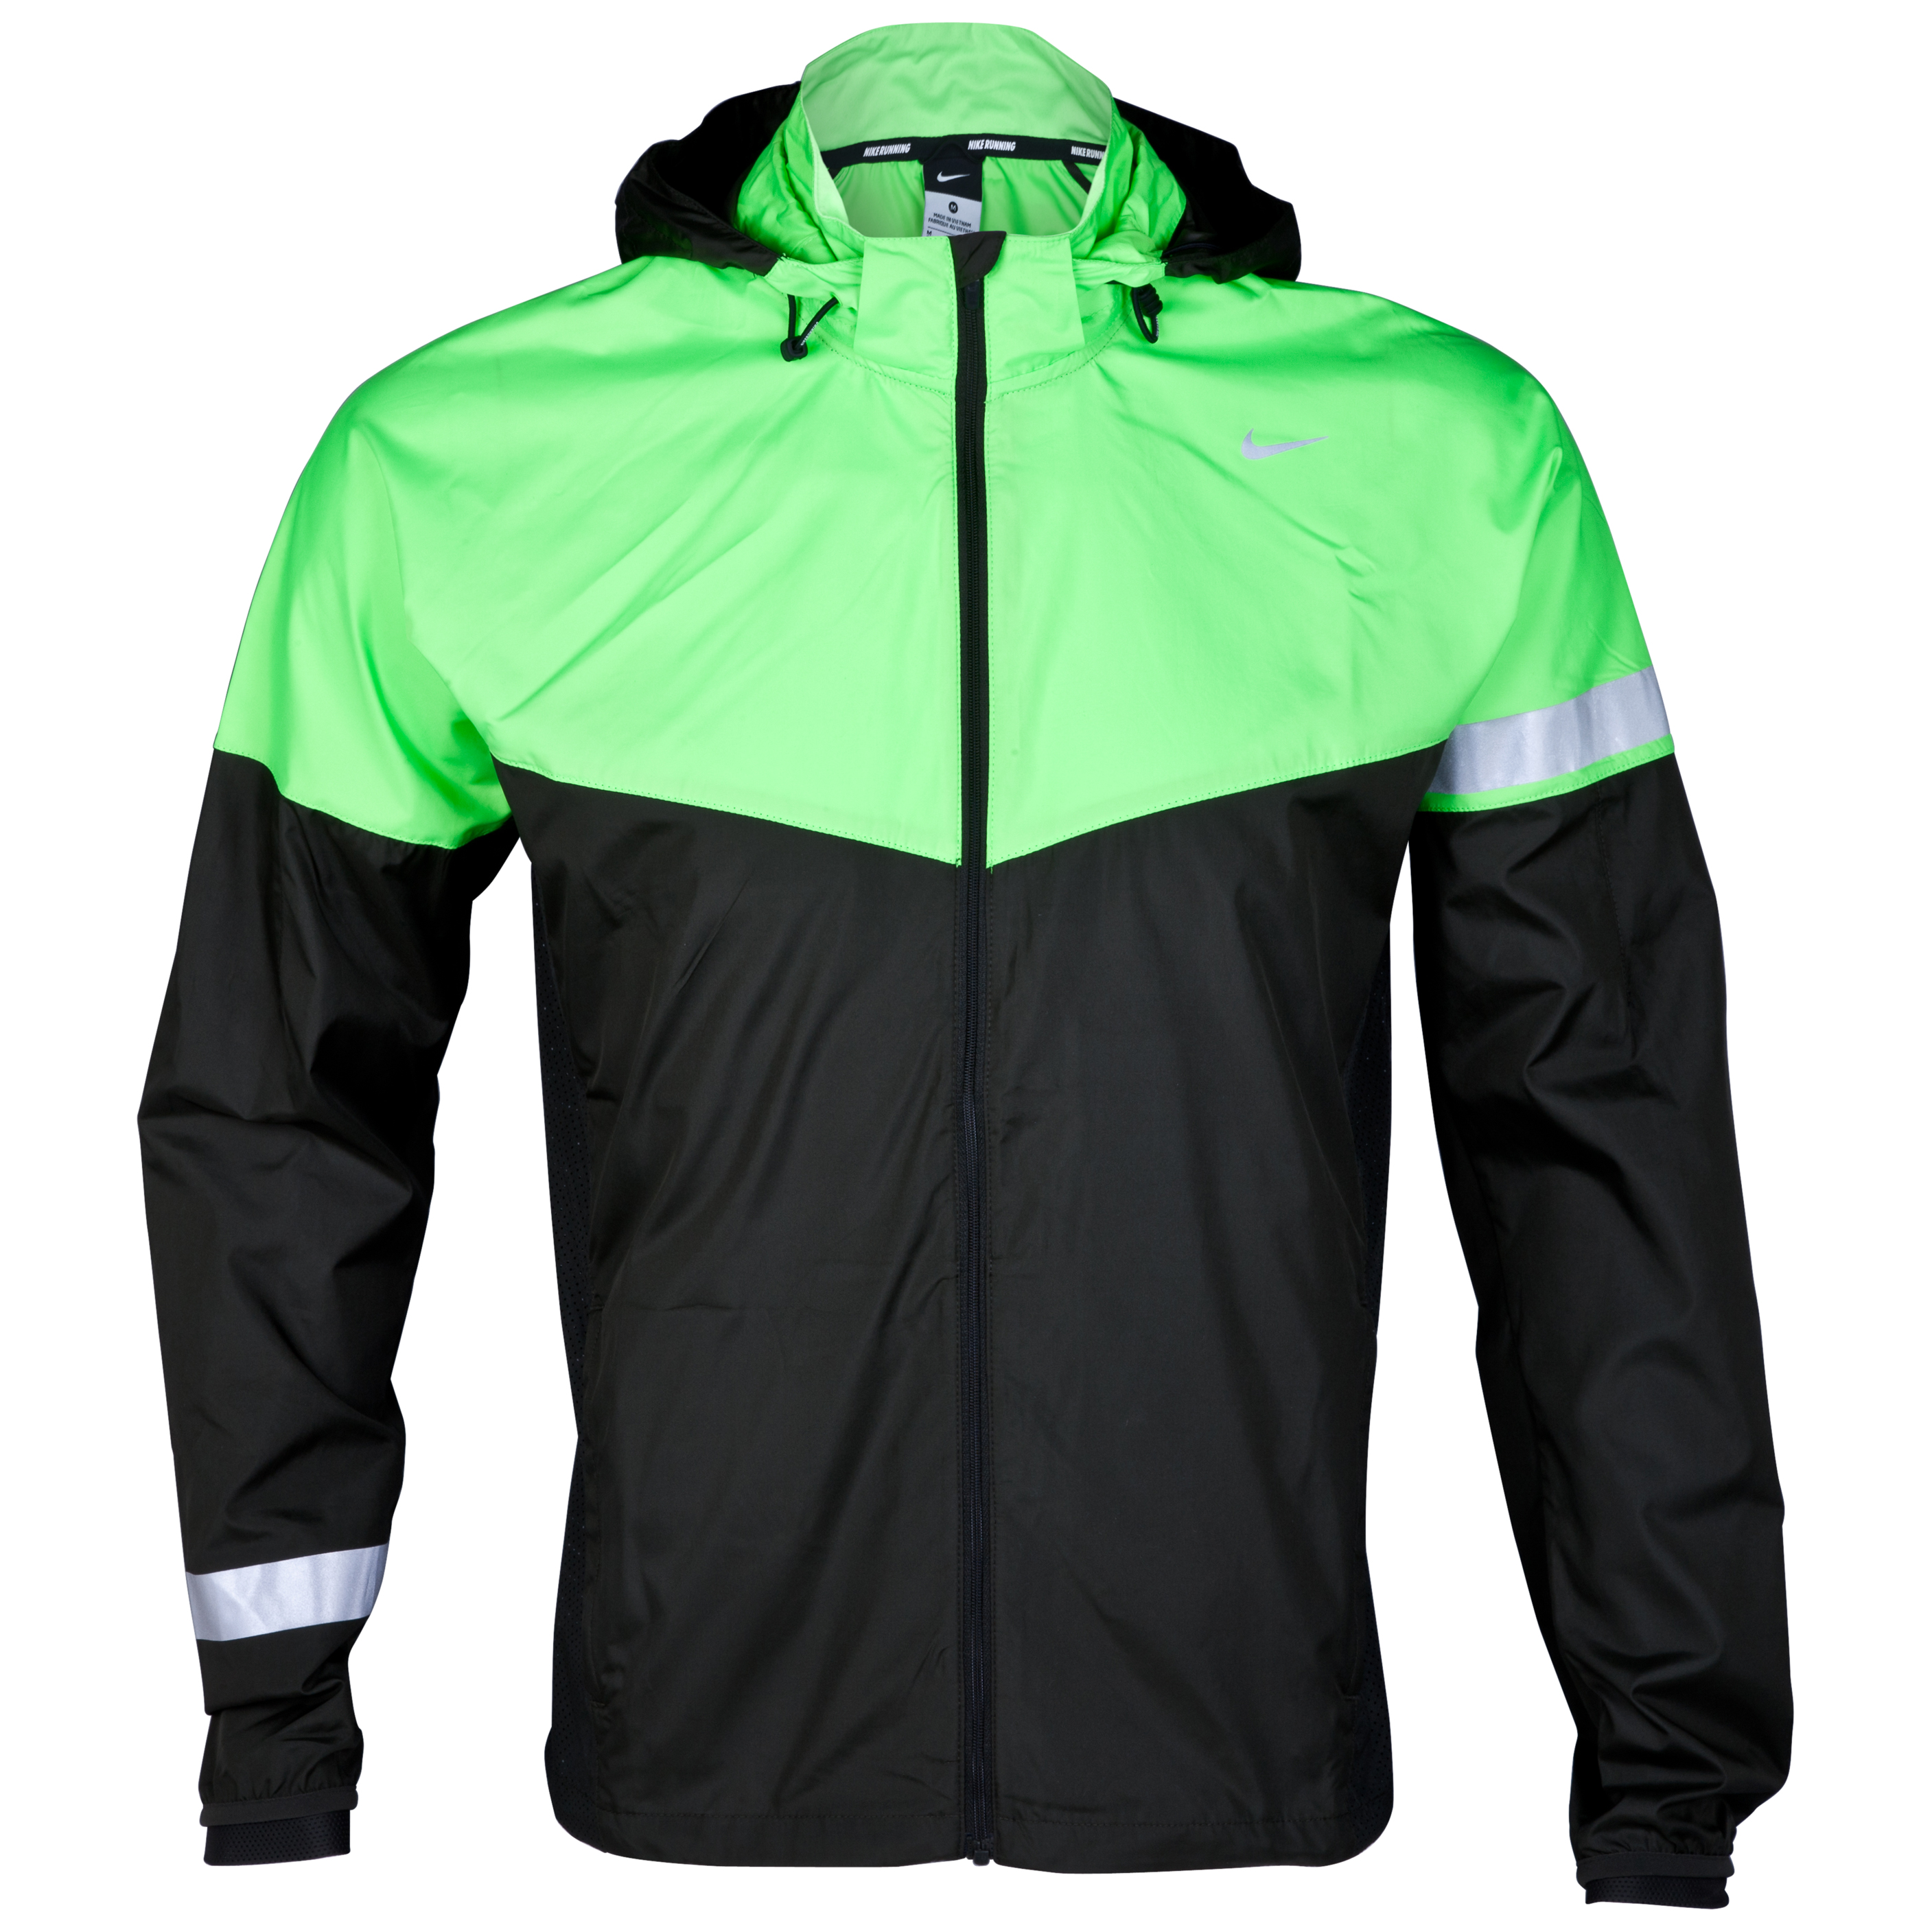 Nike Vapor Jacket - Sequoia/Electric Green/Reflective Silver